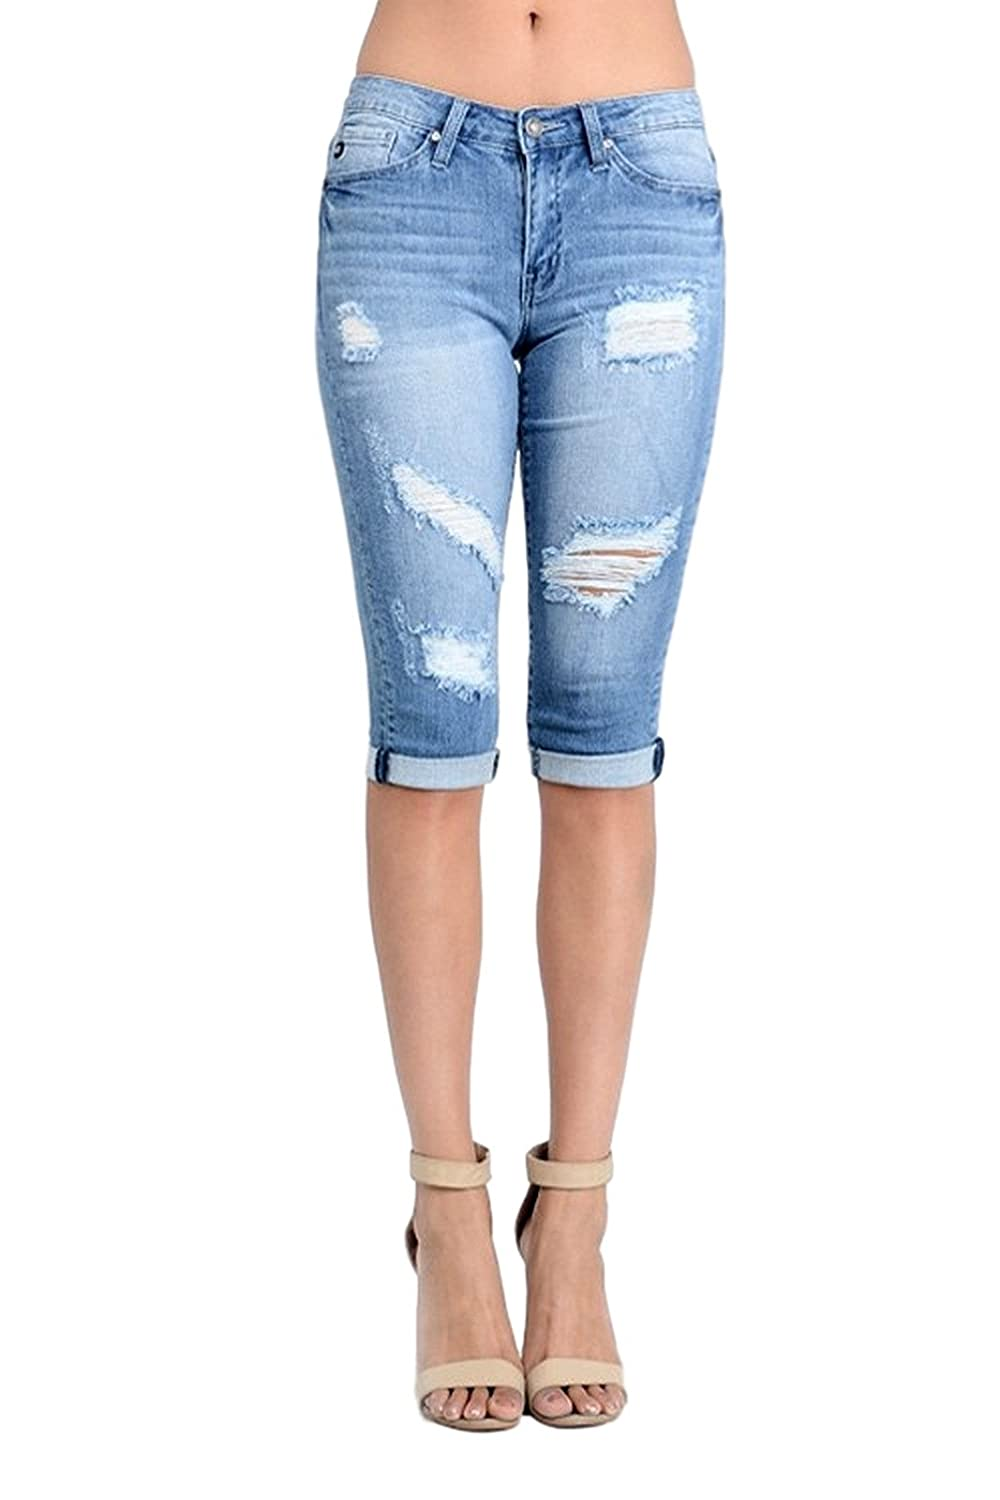 KAN CAN Women's Destroyed Bermuda Short Jeans